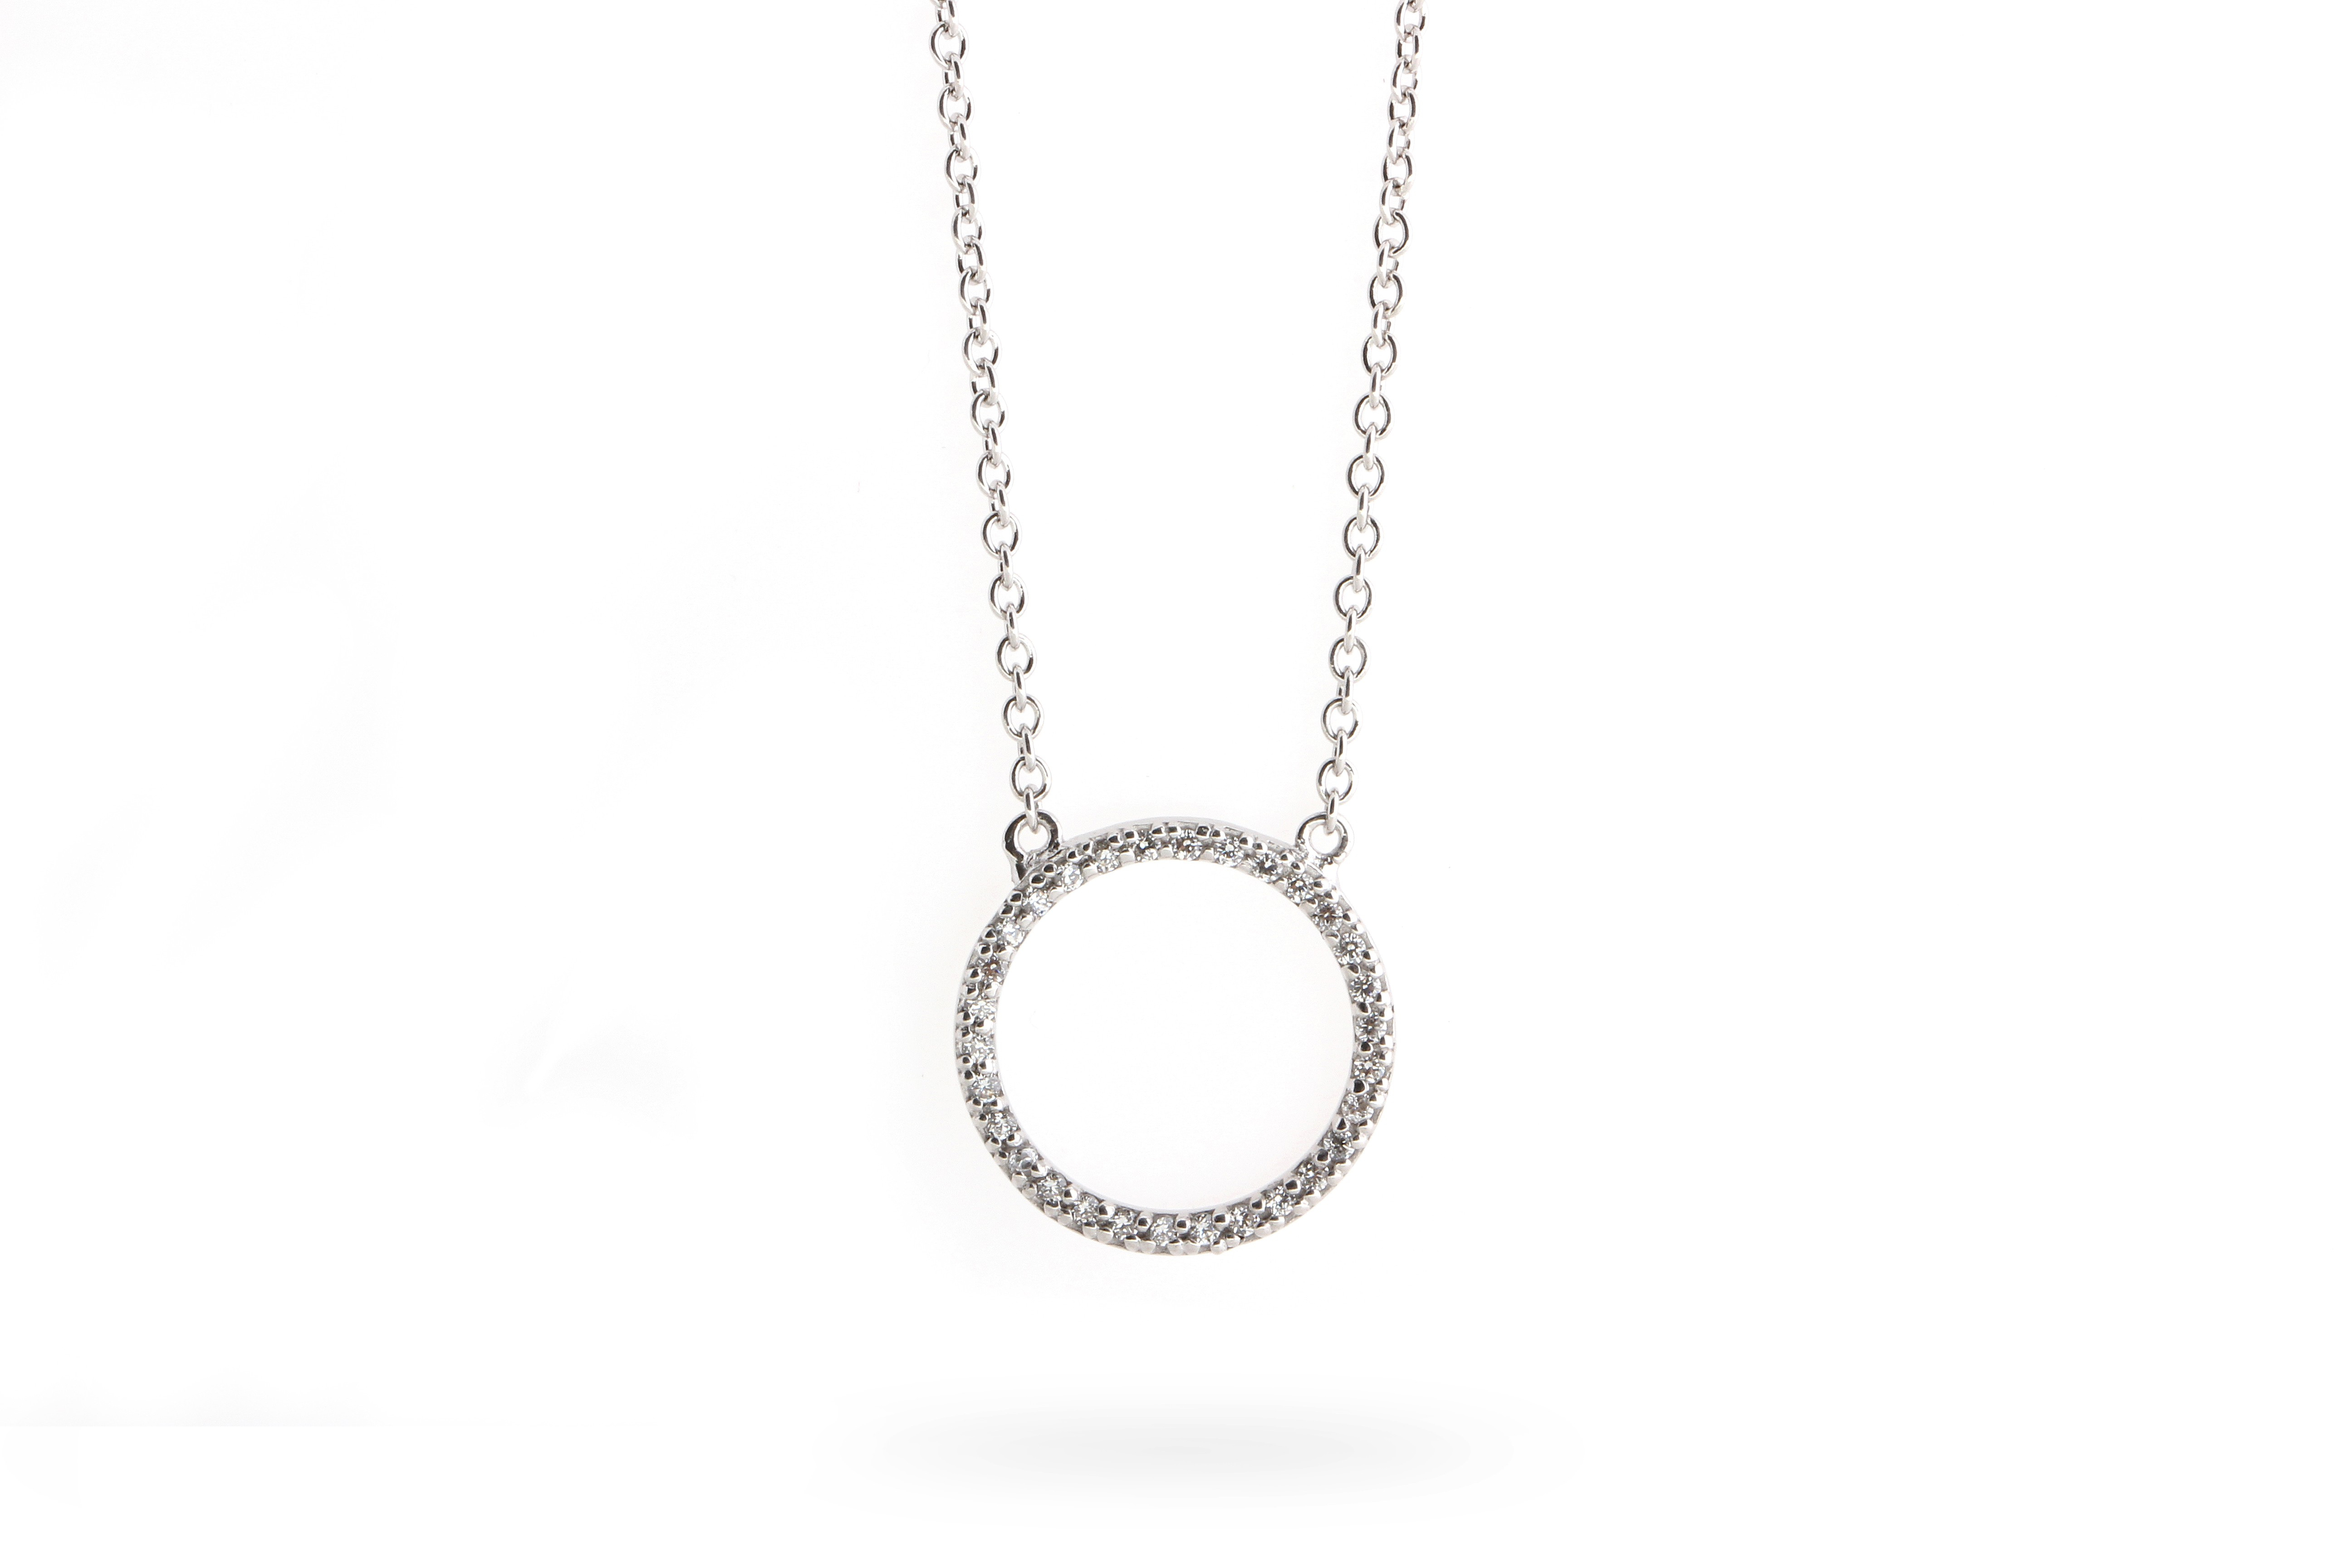 Circle Of Life Necklace Regarding 2019 Circle Of Sparkle Necklaces (View 7 of 25)